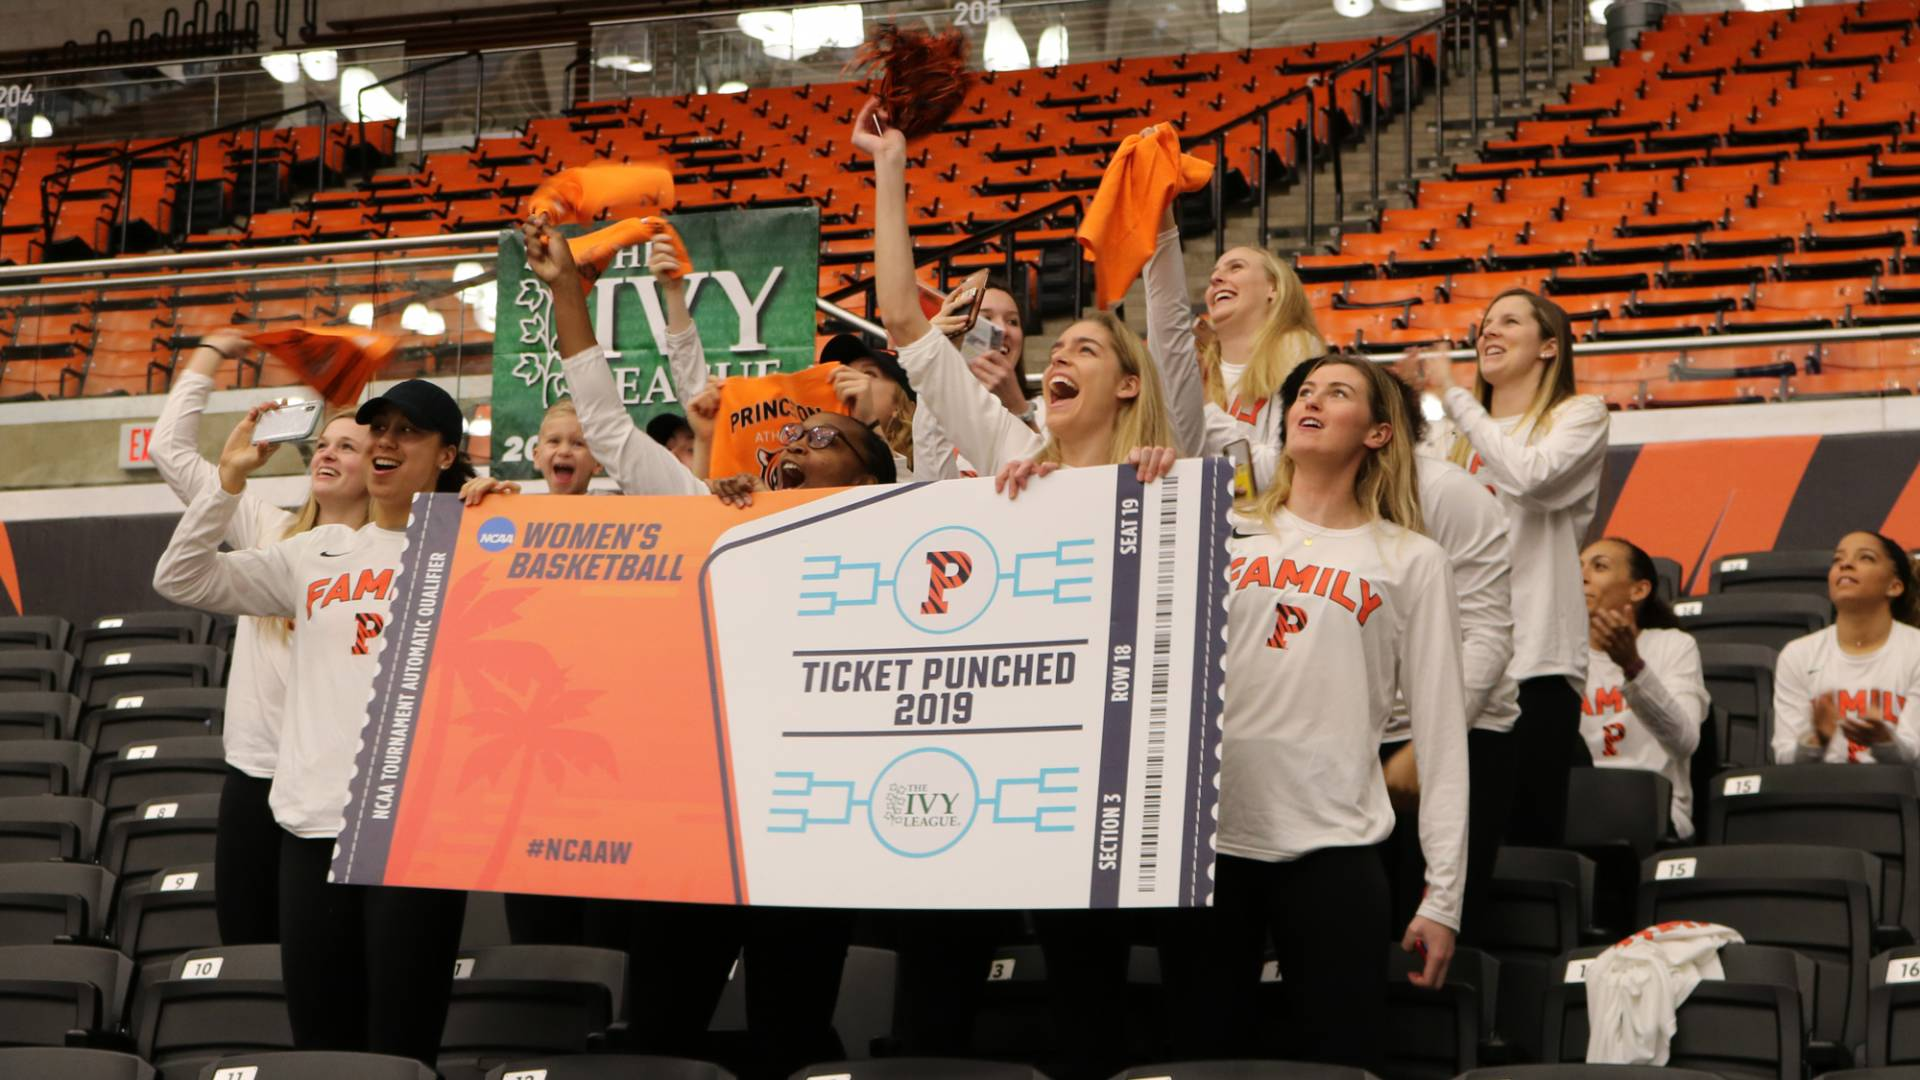 Students cheering for women's basketball